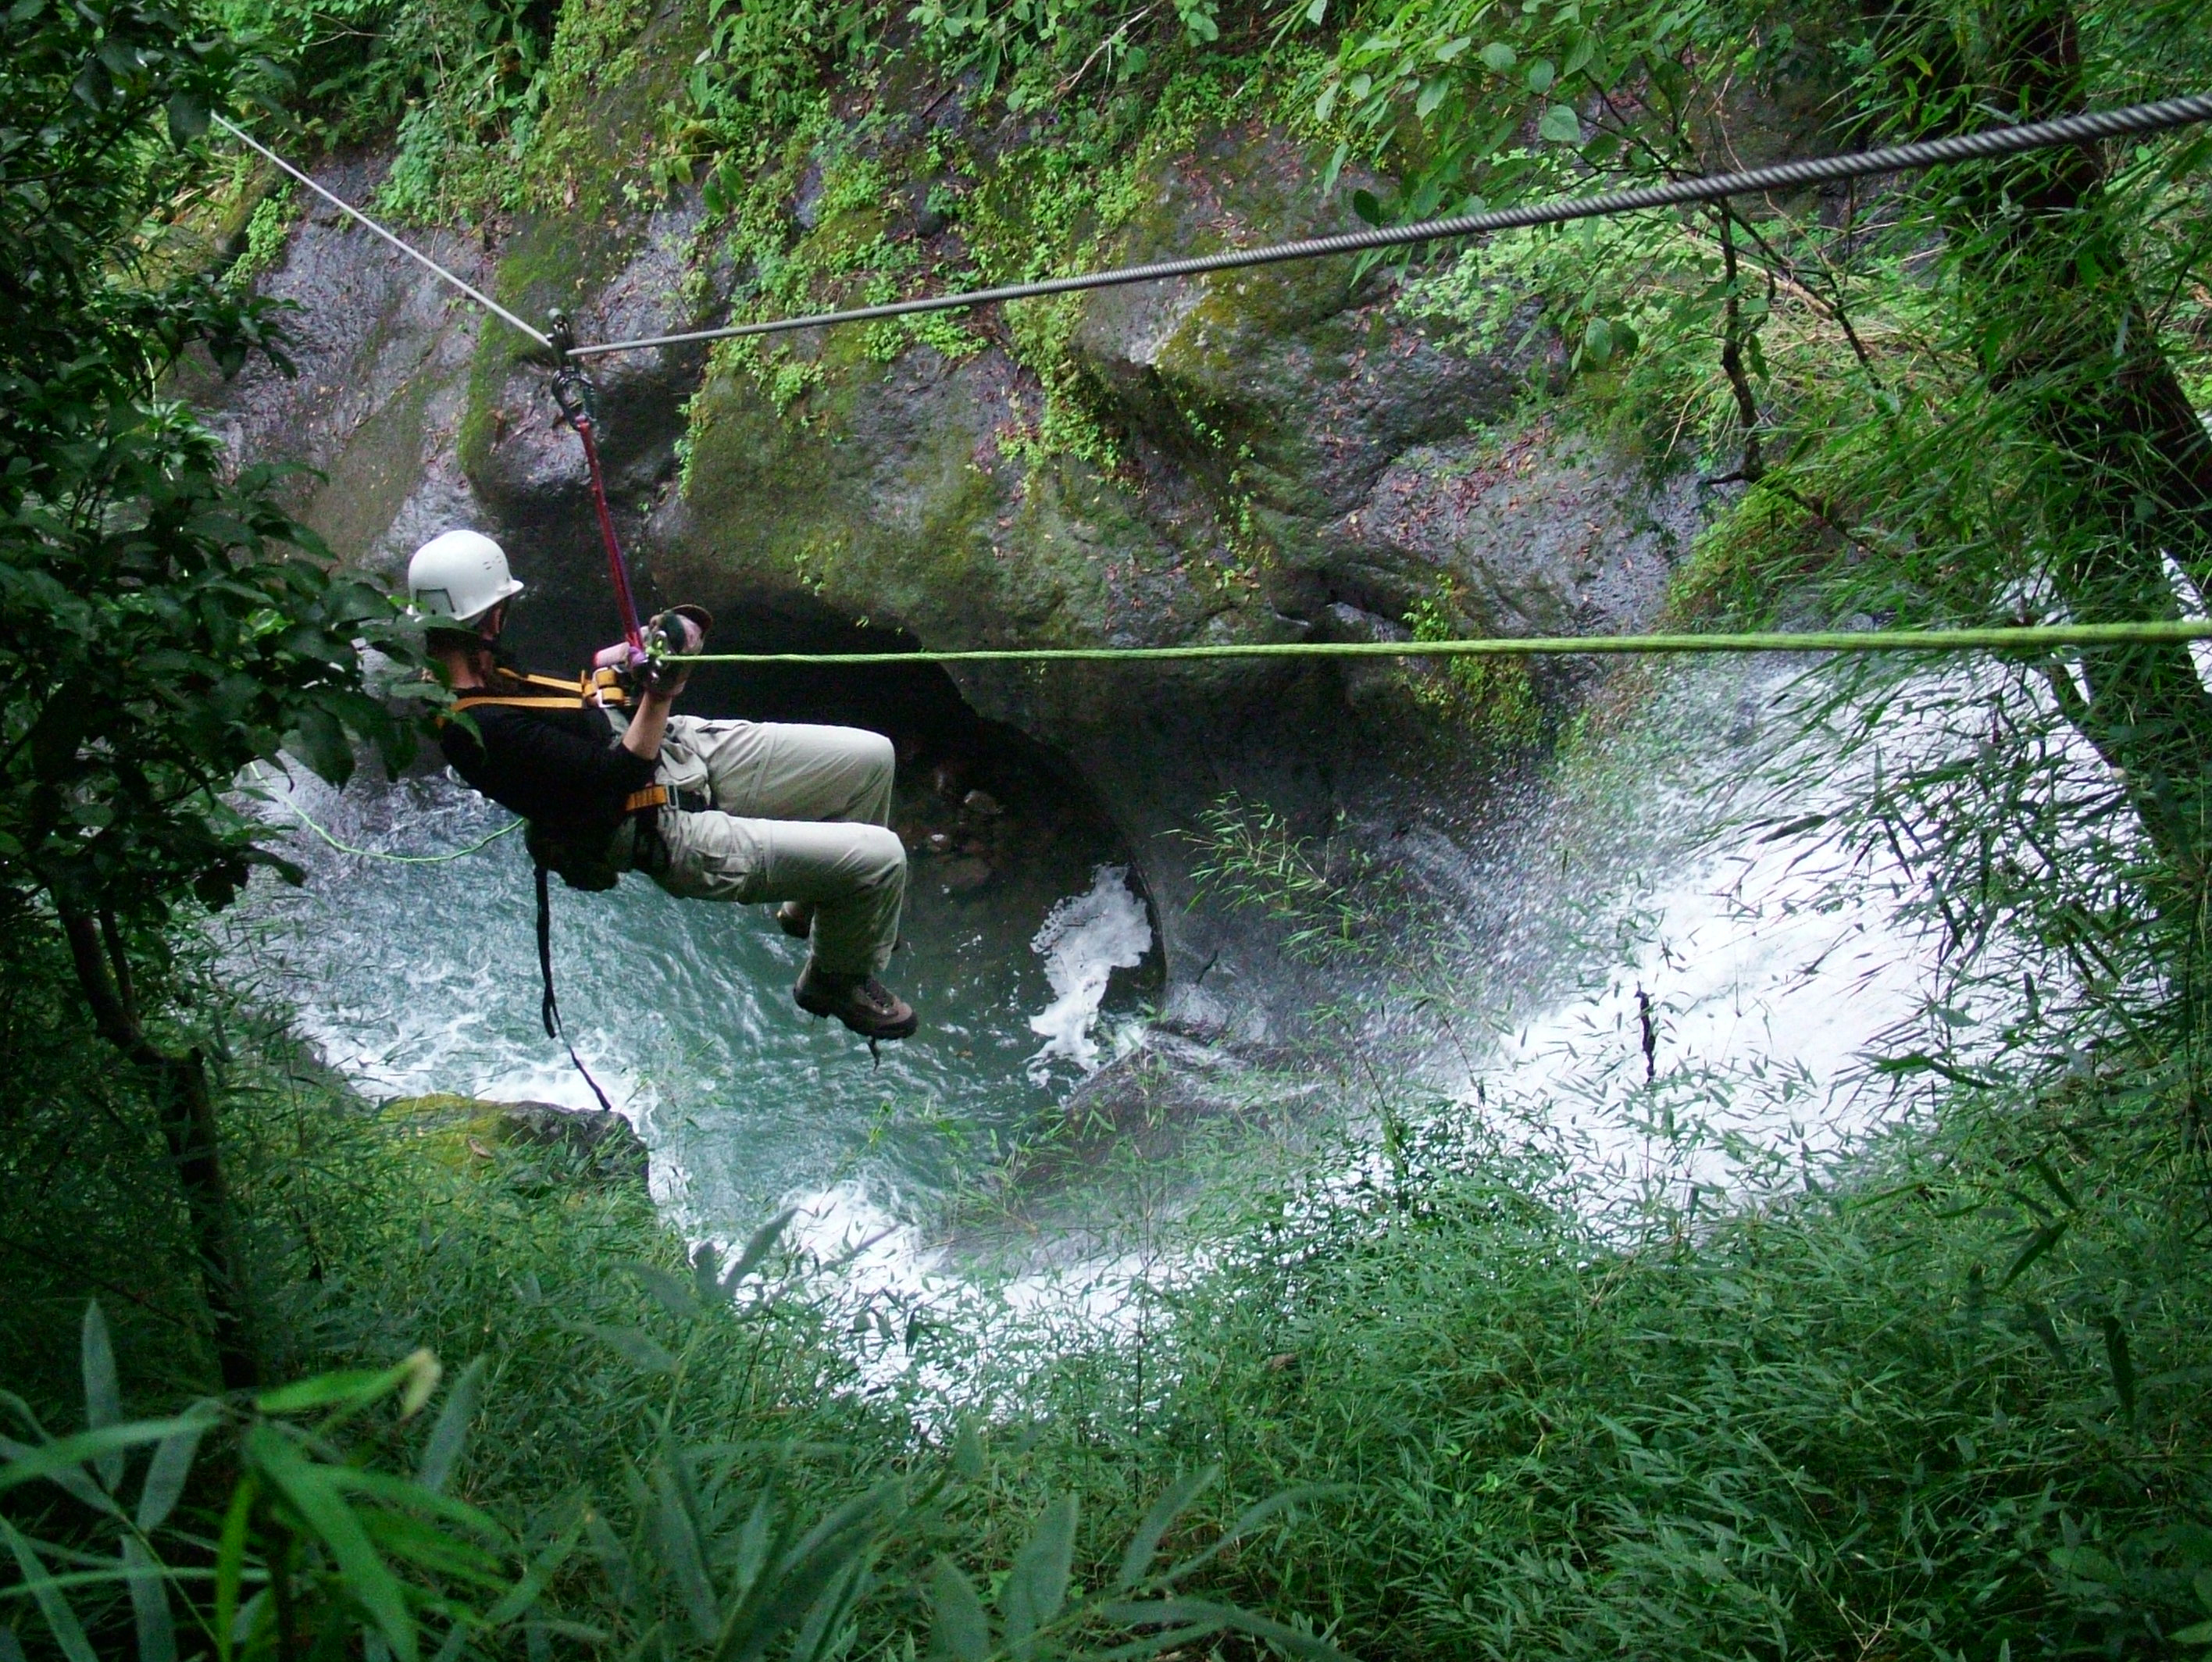 Guanacaste adventure tours – grab an opportunity to fly over the waterfalls like a Superman image 4